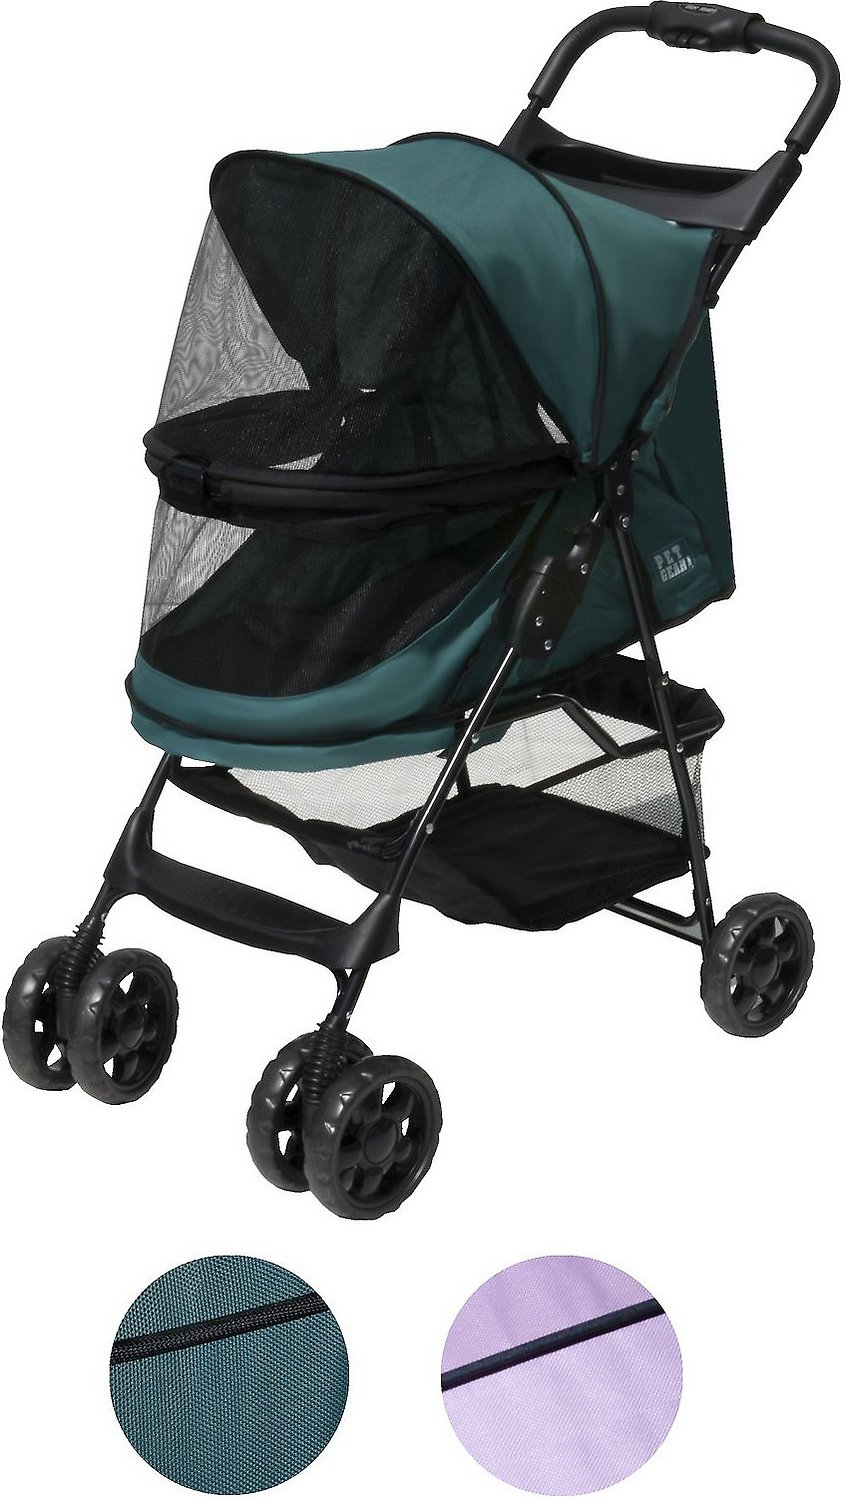 Pet Gear Happy trails No-Zip Pet Stroller, Emerald - Chewy.com